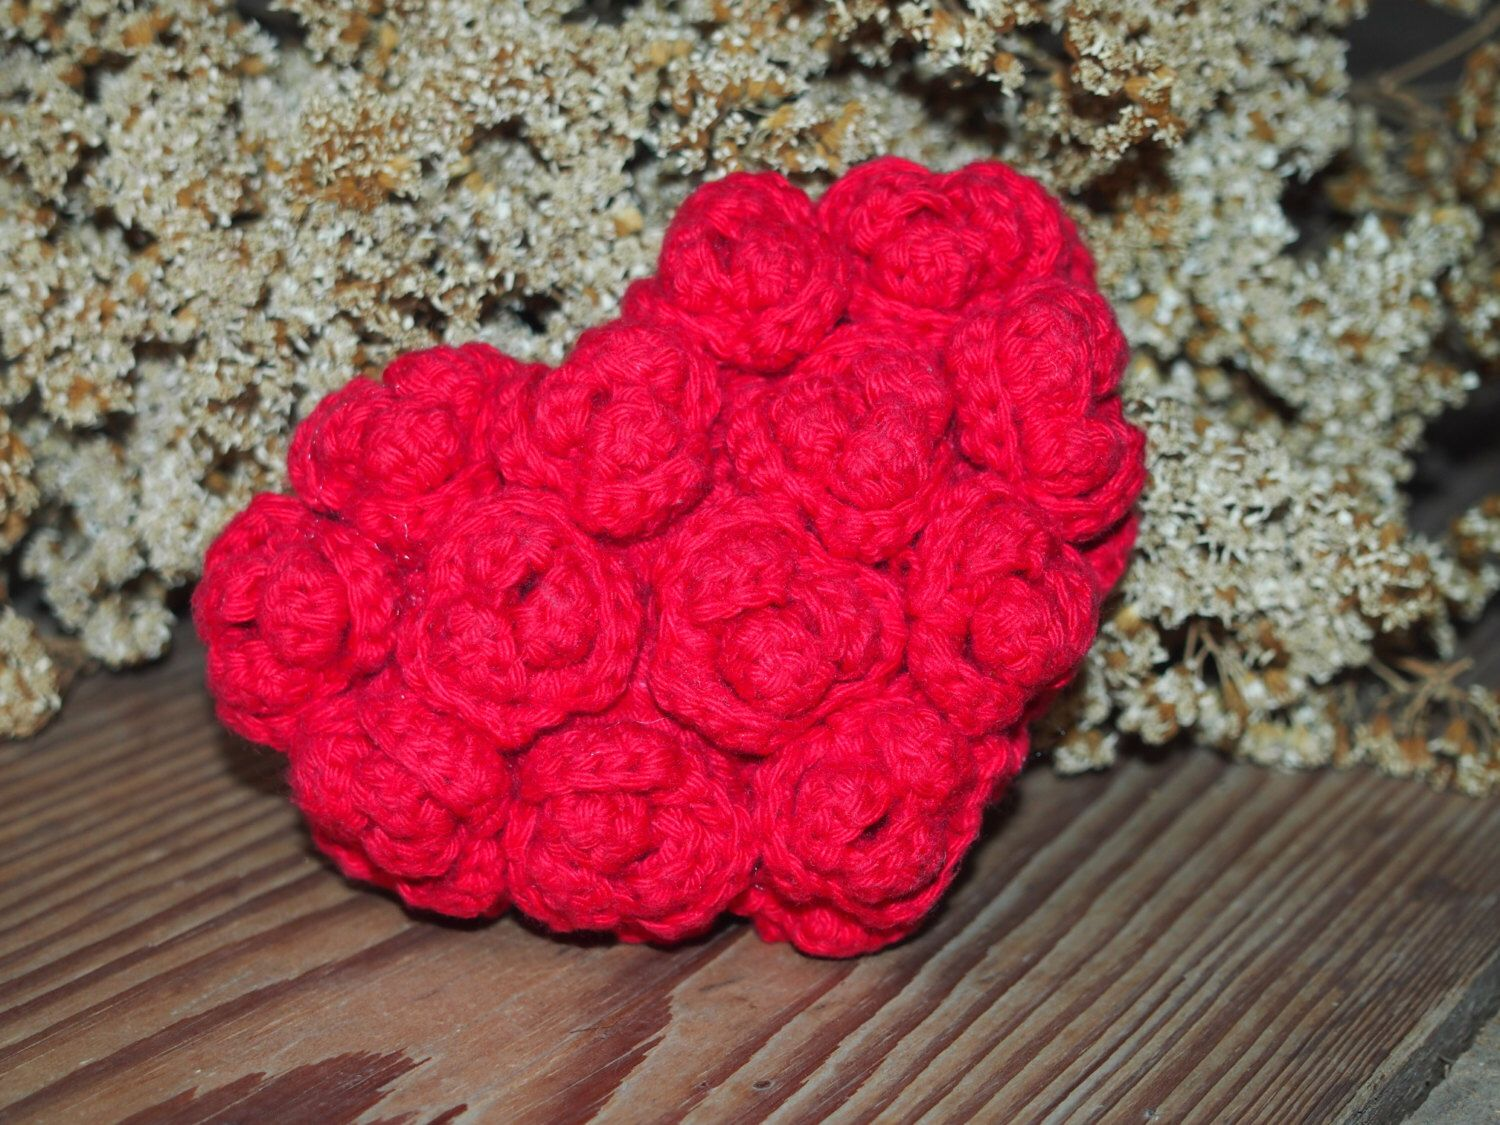 Crochet pattern heart amigurumi ring pillow pattern crochet crochet pattern heart amigurumi ring pillow pattern crochet heart pattern red rose heart pattern crochet heart red bankloansurffo Images